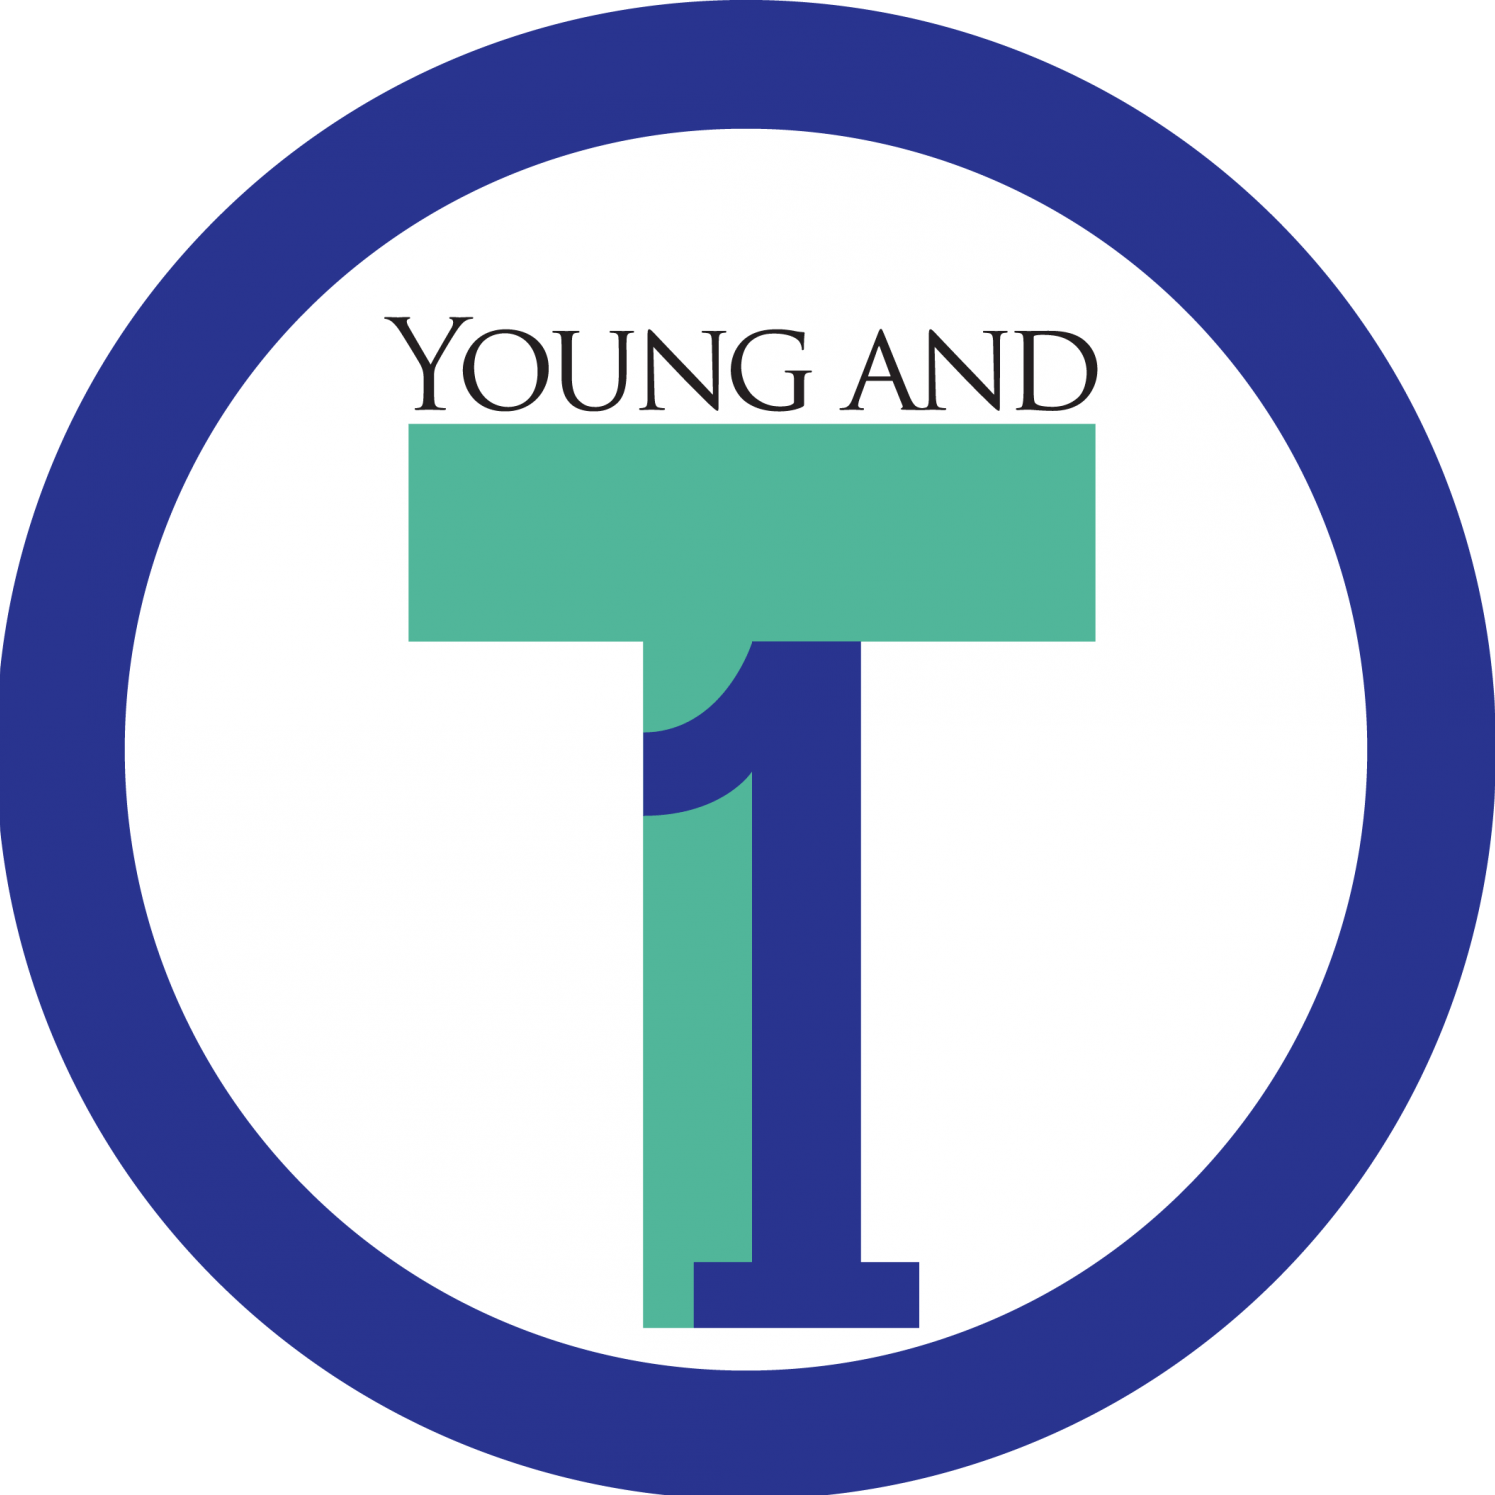 Young & T1